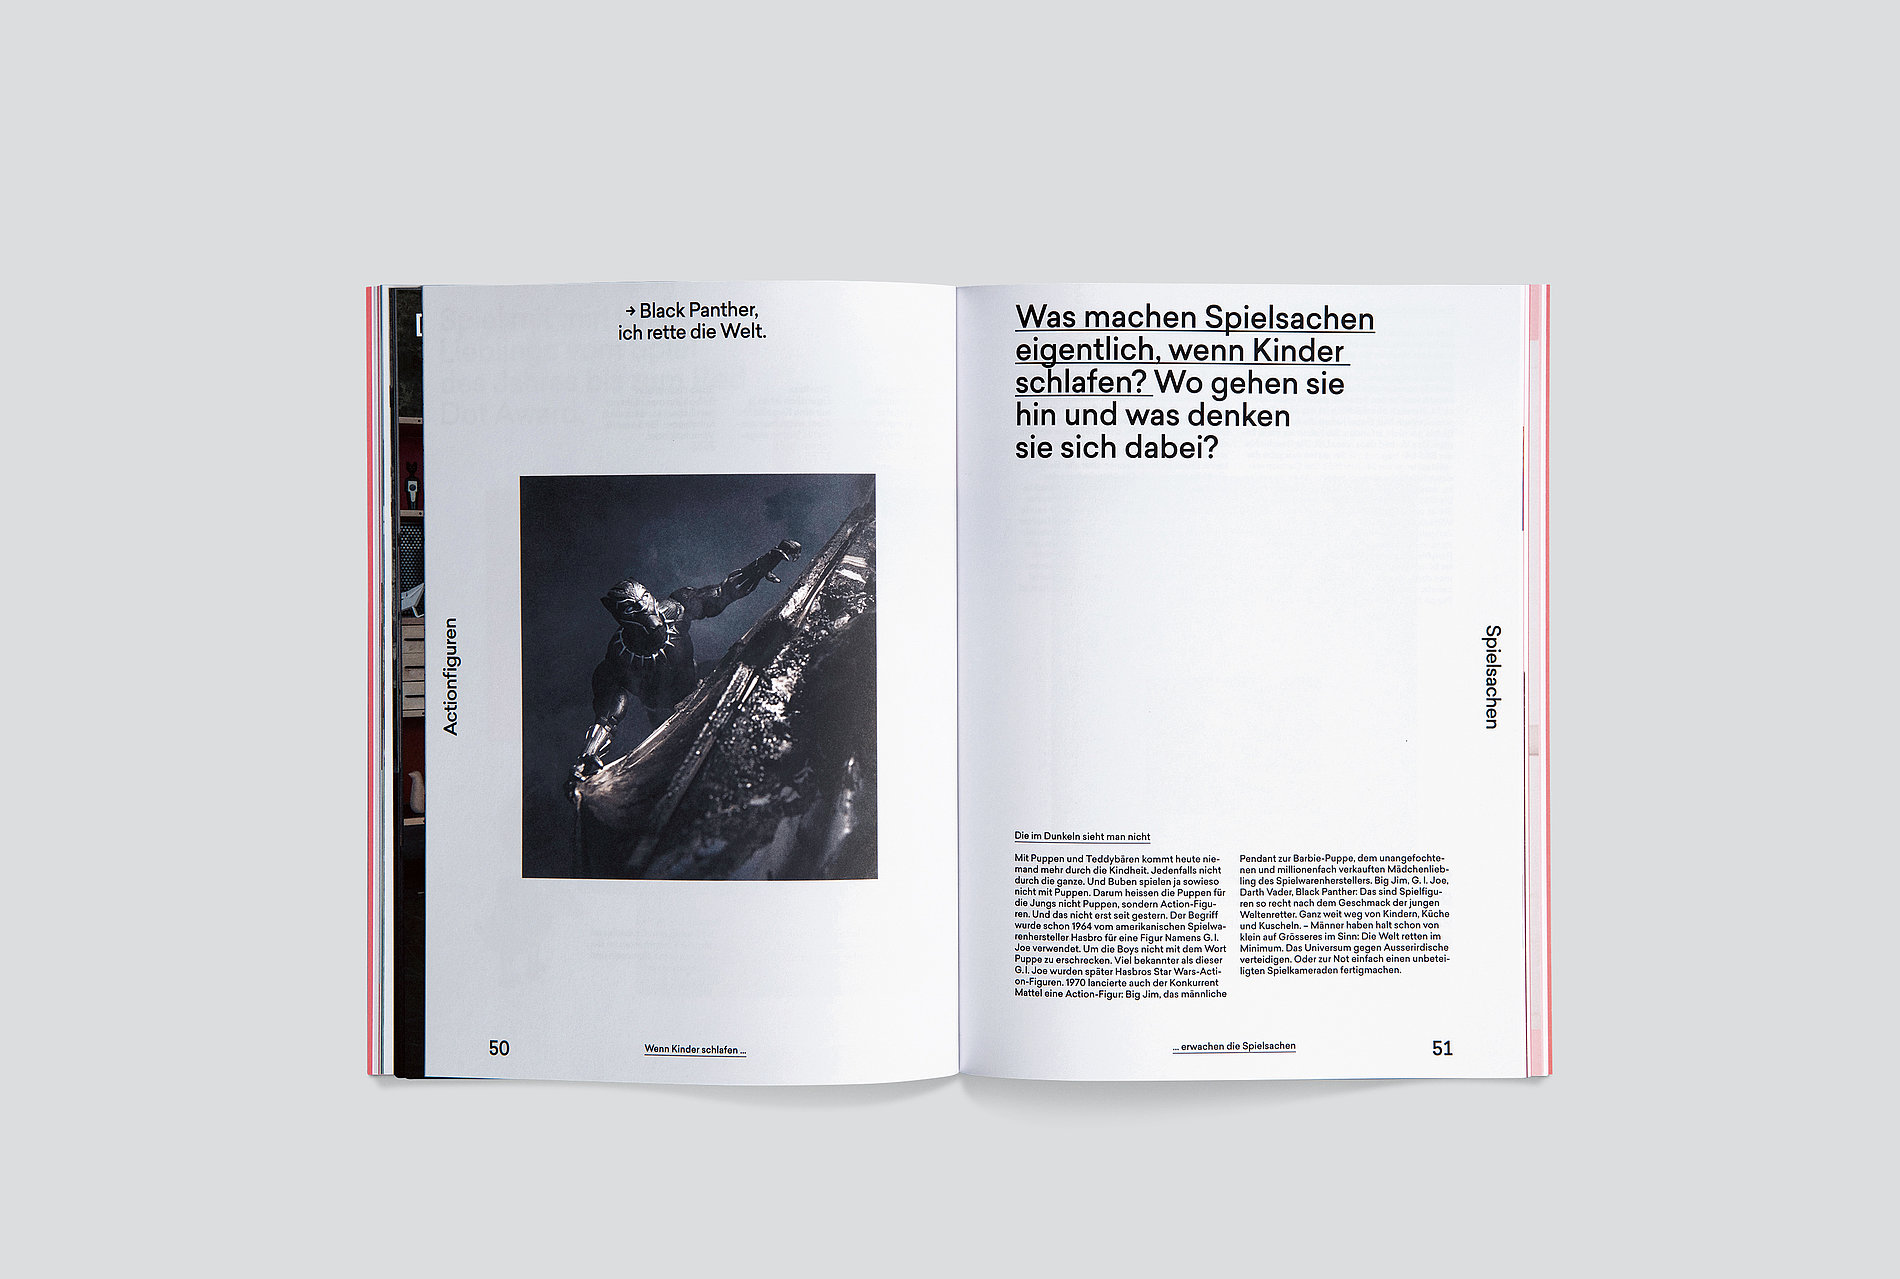 Magazin Nr. 3 – extra heft | Red Dot Design Award